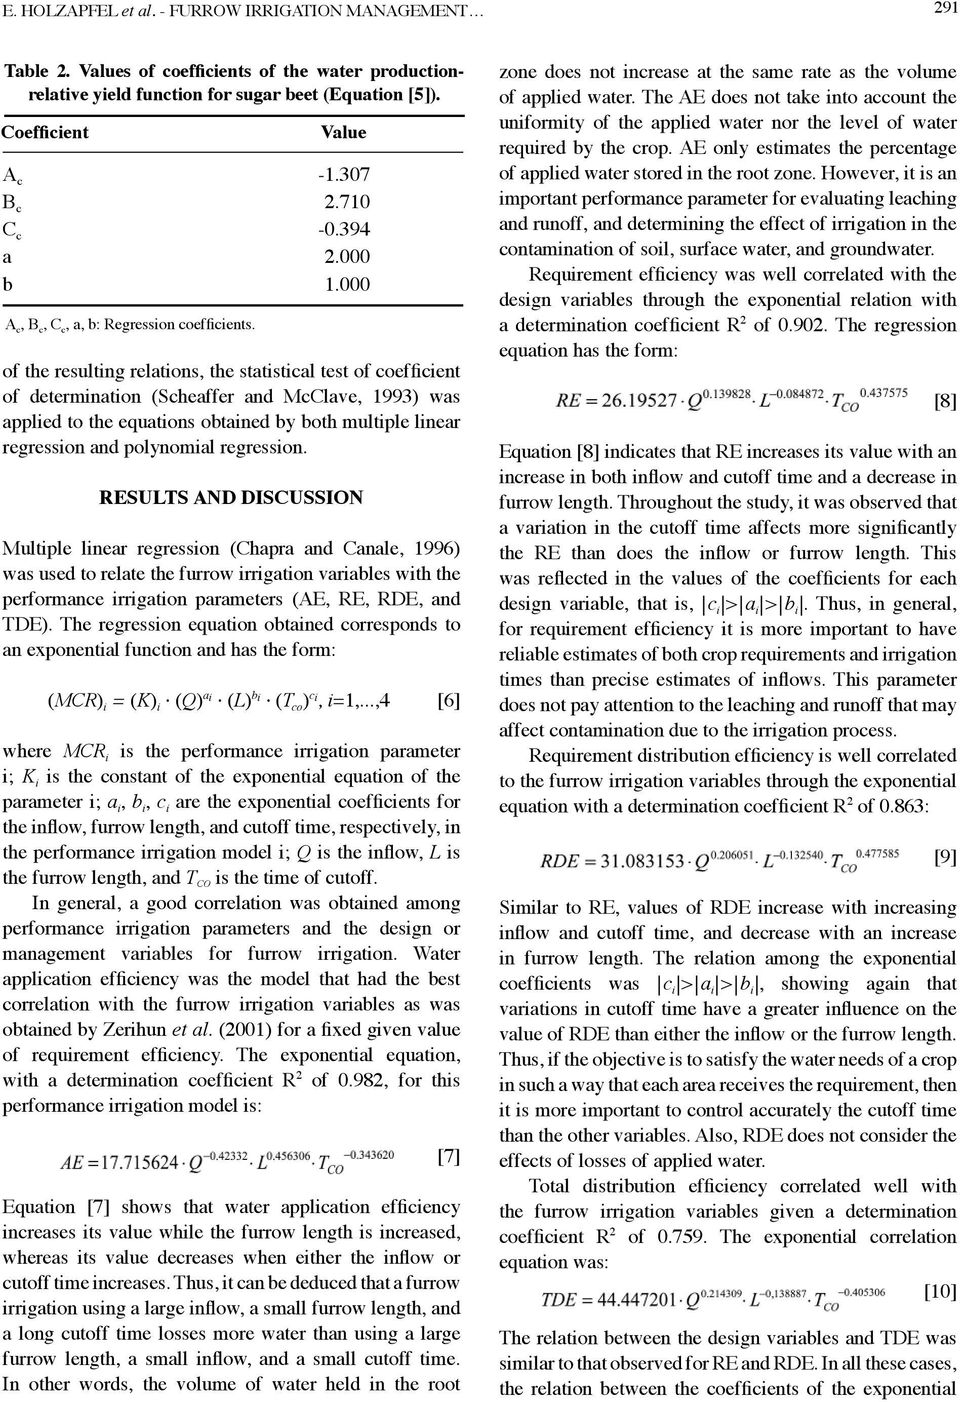 000 of the resulting relations, the statistical test of coefficient of determination (Scheaffer and McClave, 1993) was applied to the equations obtained by both multiple linear regression and